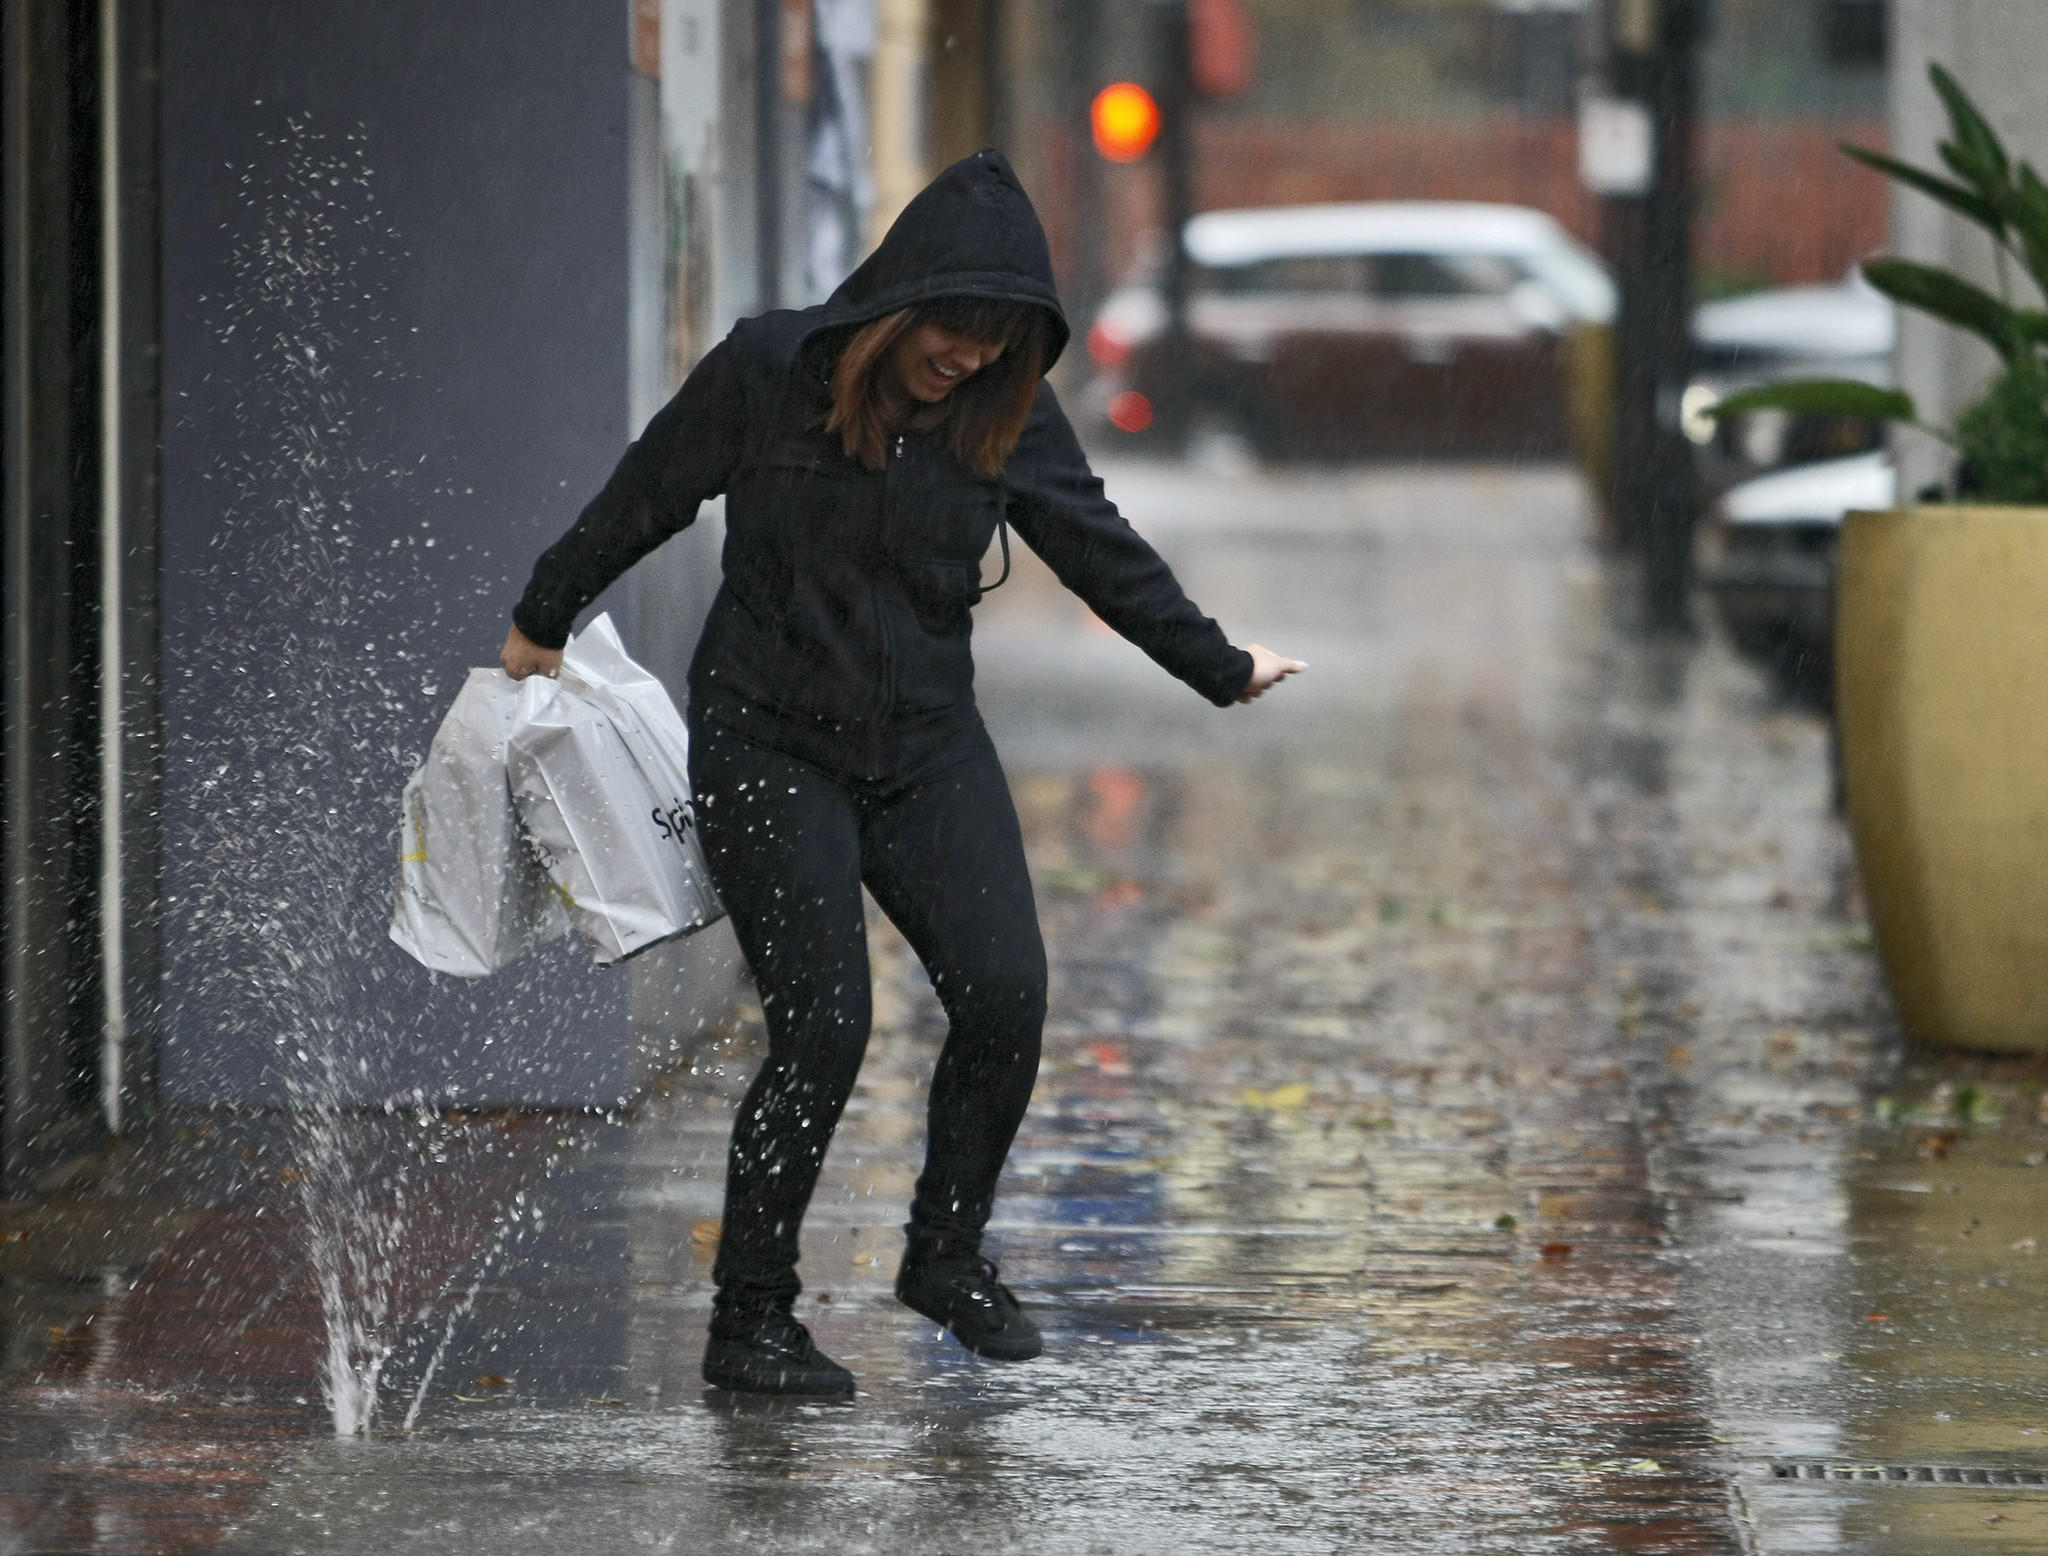 A woman tries to avoid the rain and water popping up from a drain on San Fernando Blvd. near Magnolia Blvd. in Burbank on Friday, Feb. 28, 2014. Rain is predicted through the weekend.